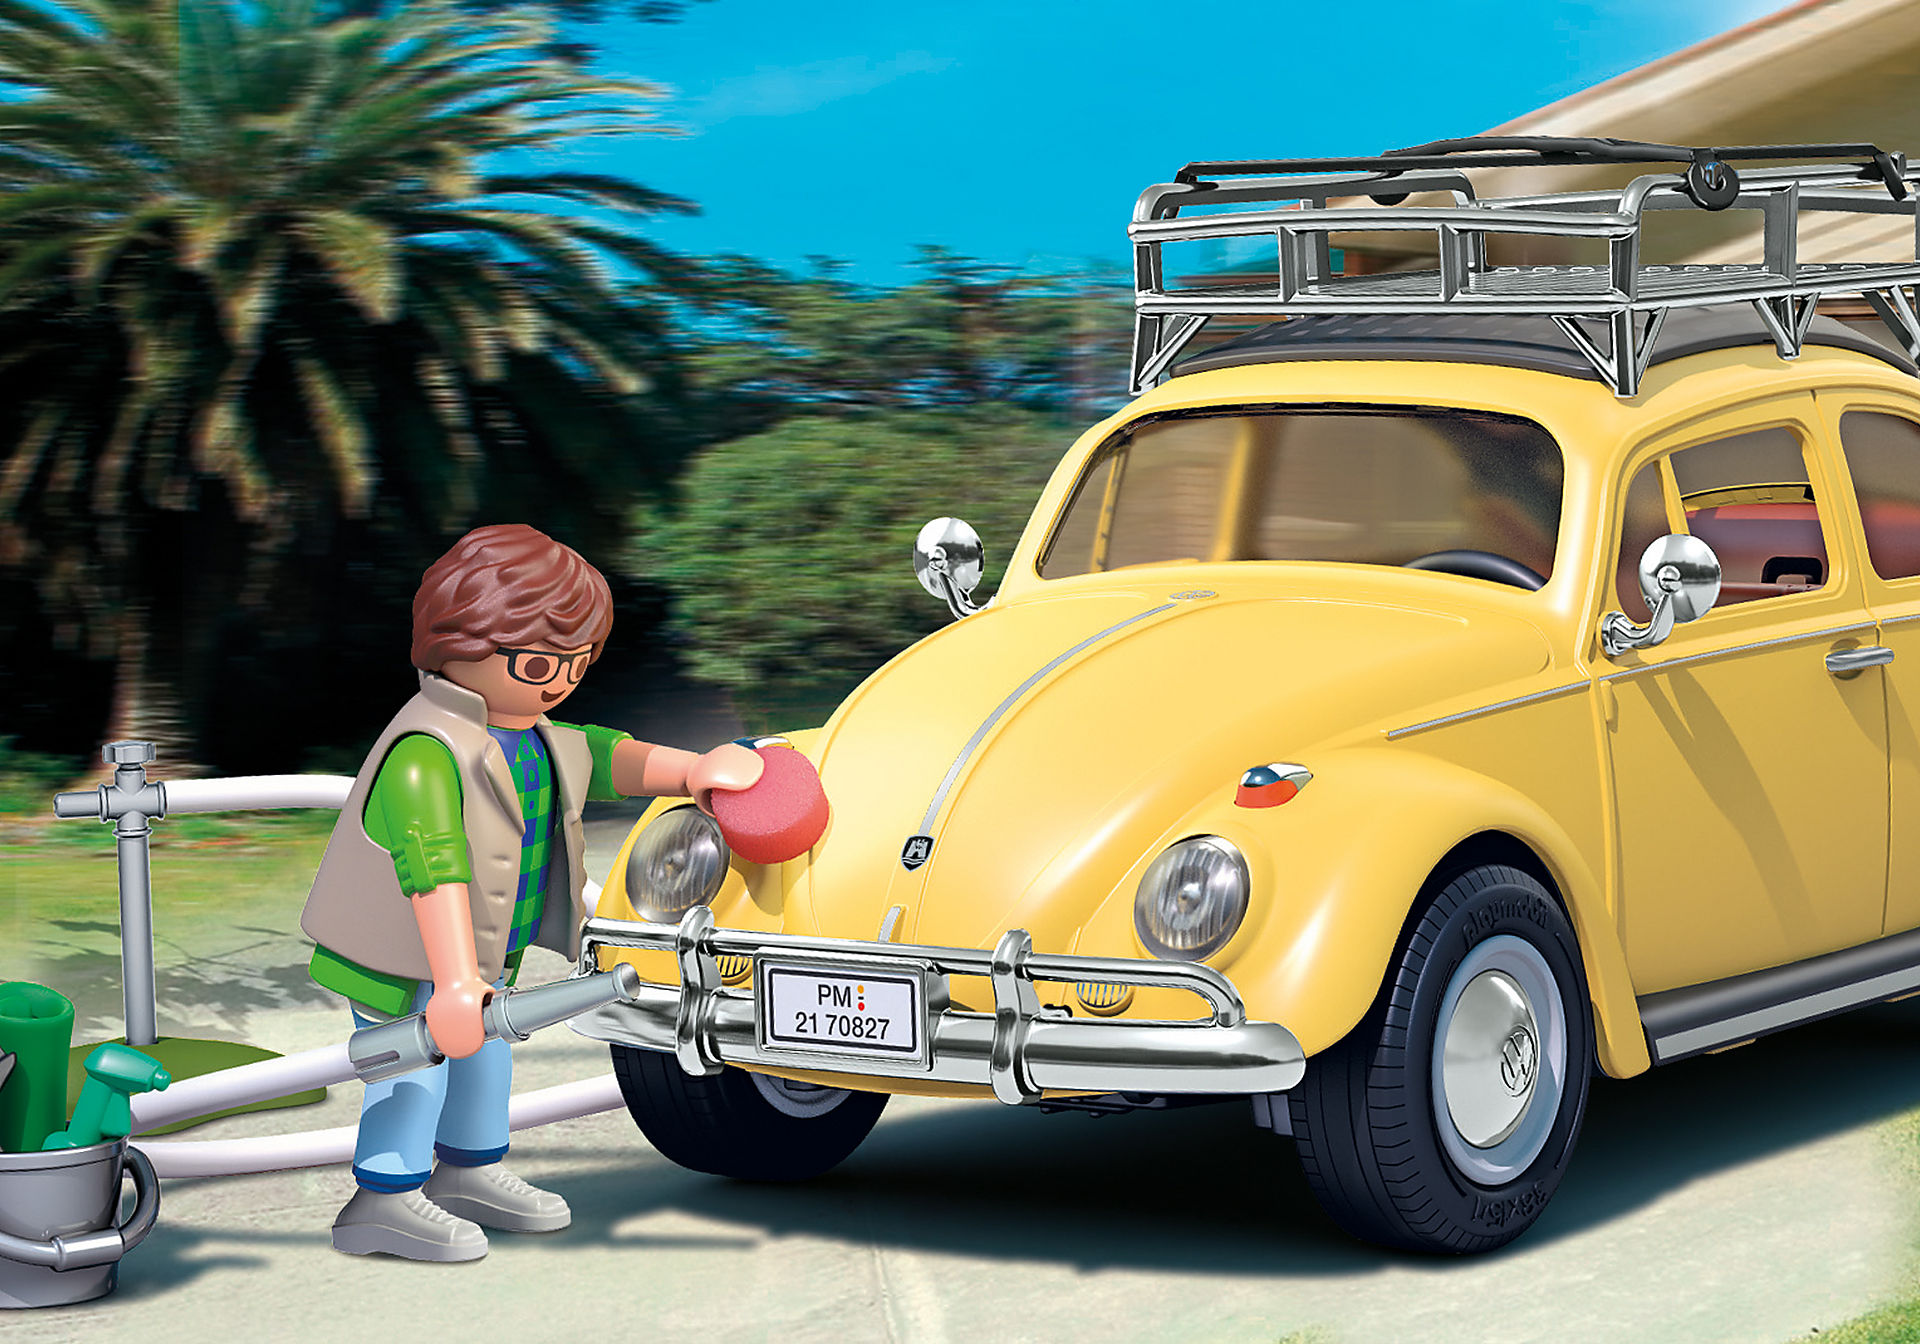 70827 Volkswagen Kever - Special Edition zoom image7